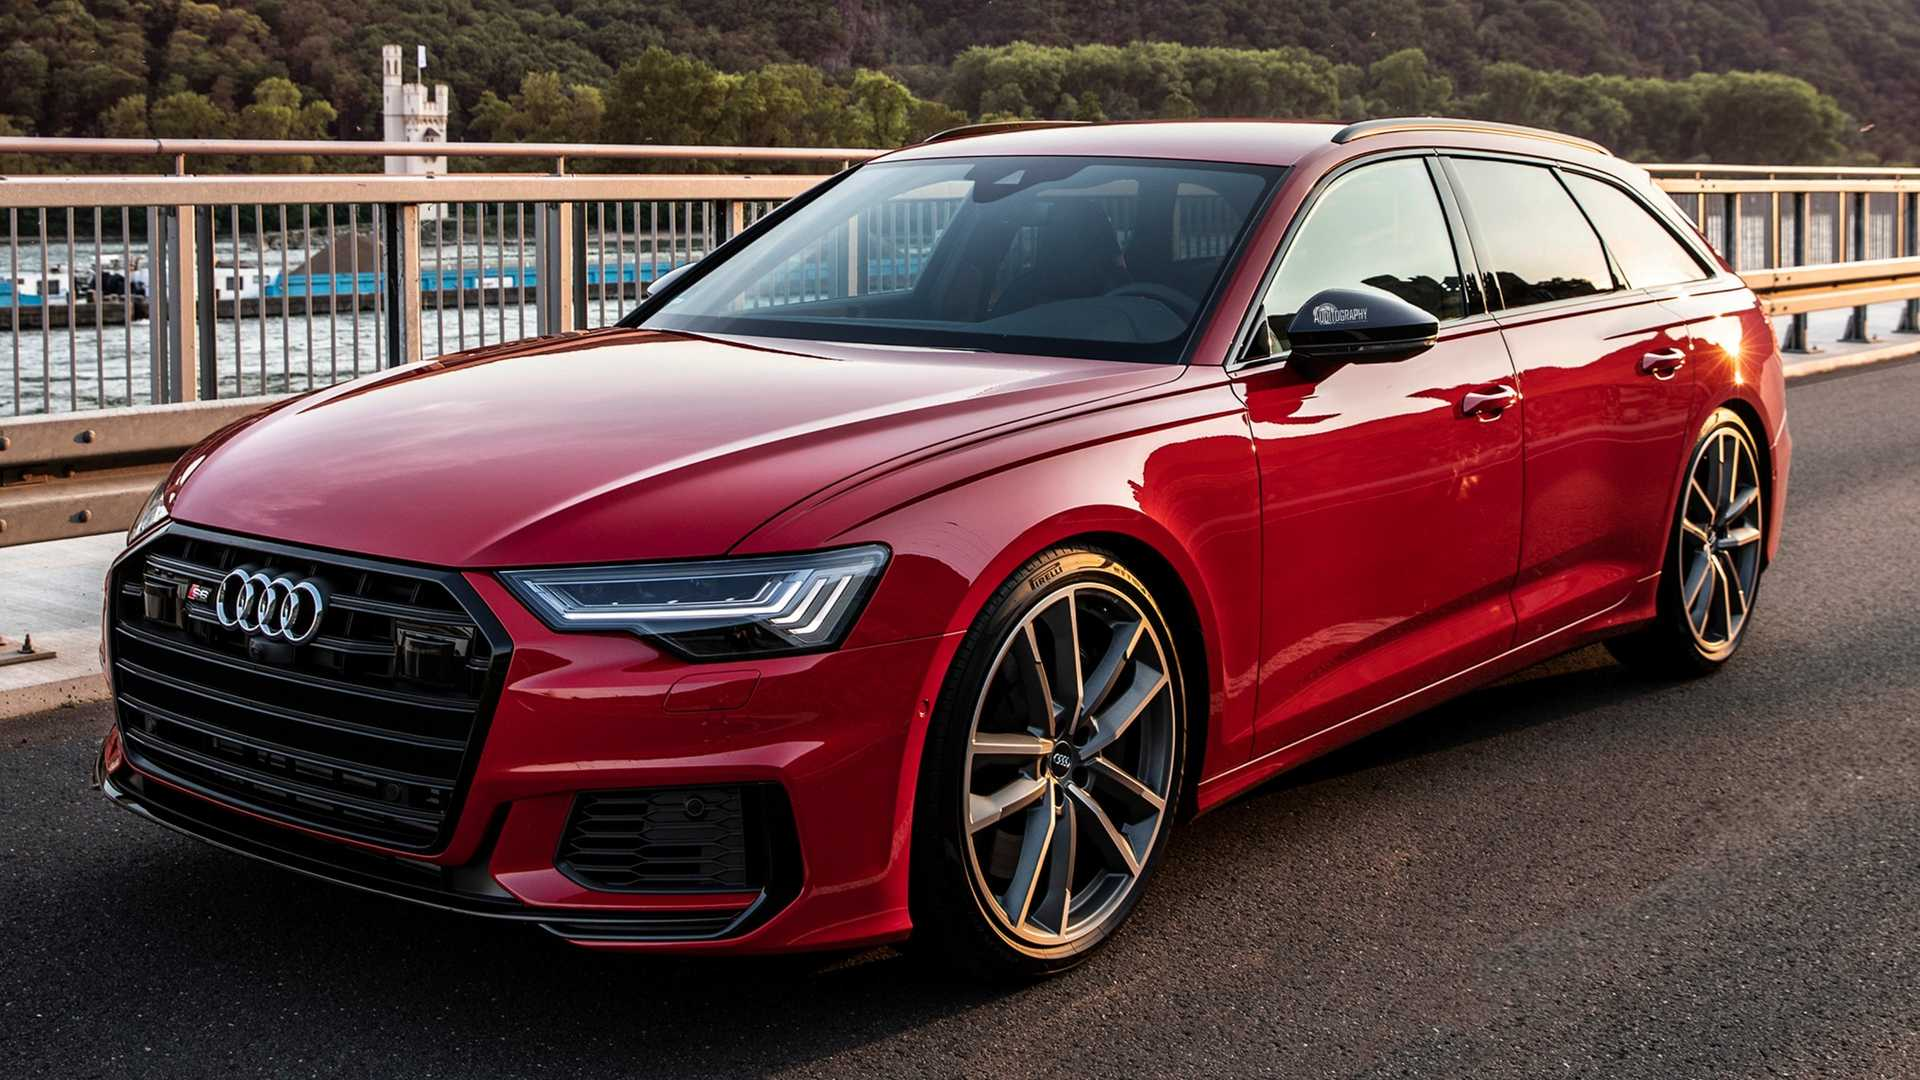 2020 Audi S6 Review.2020 Audi S6 Avant Close Up Video Fuels Our Love For Wagons